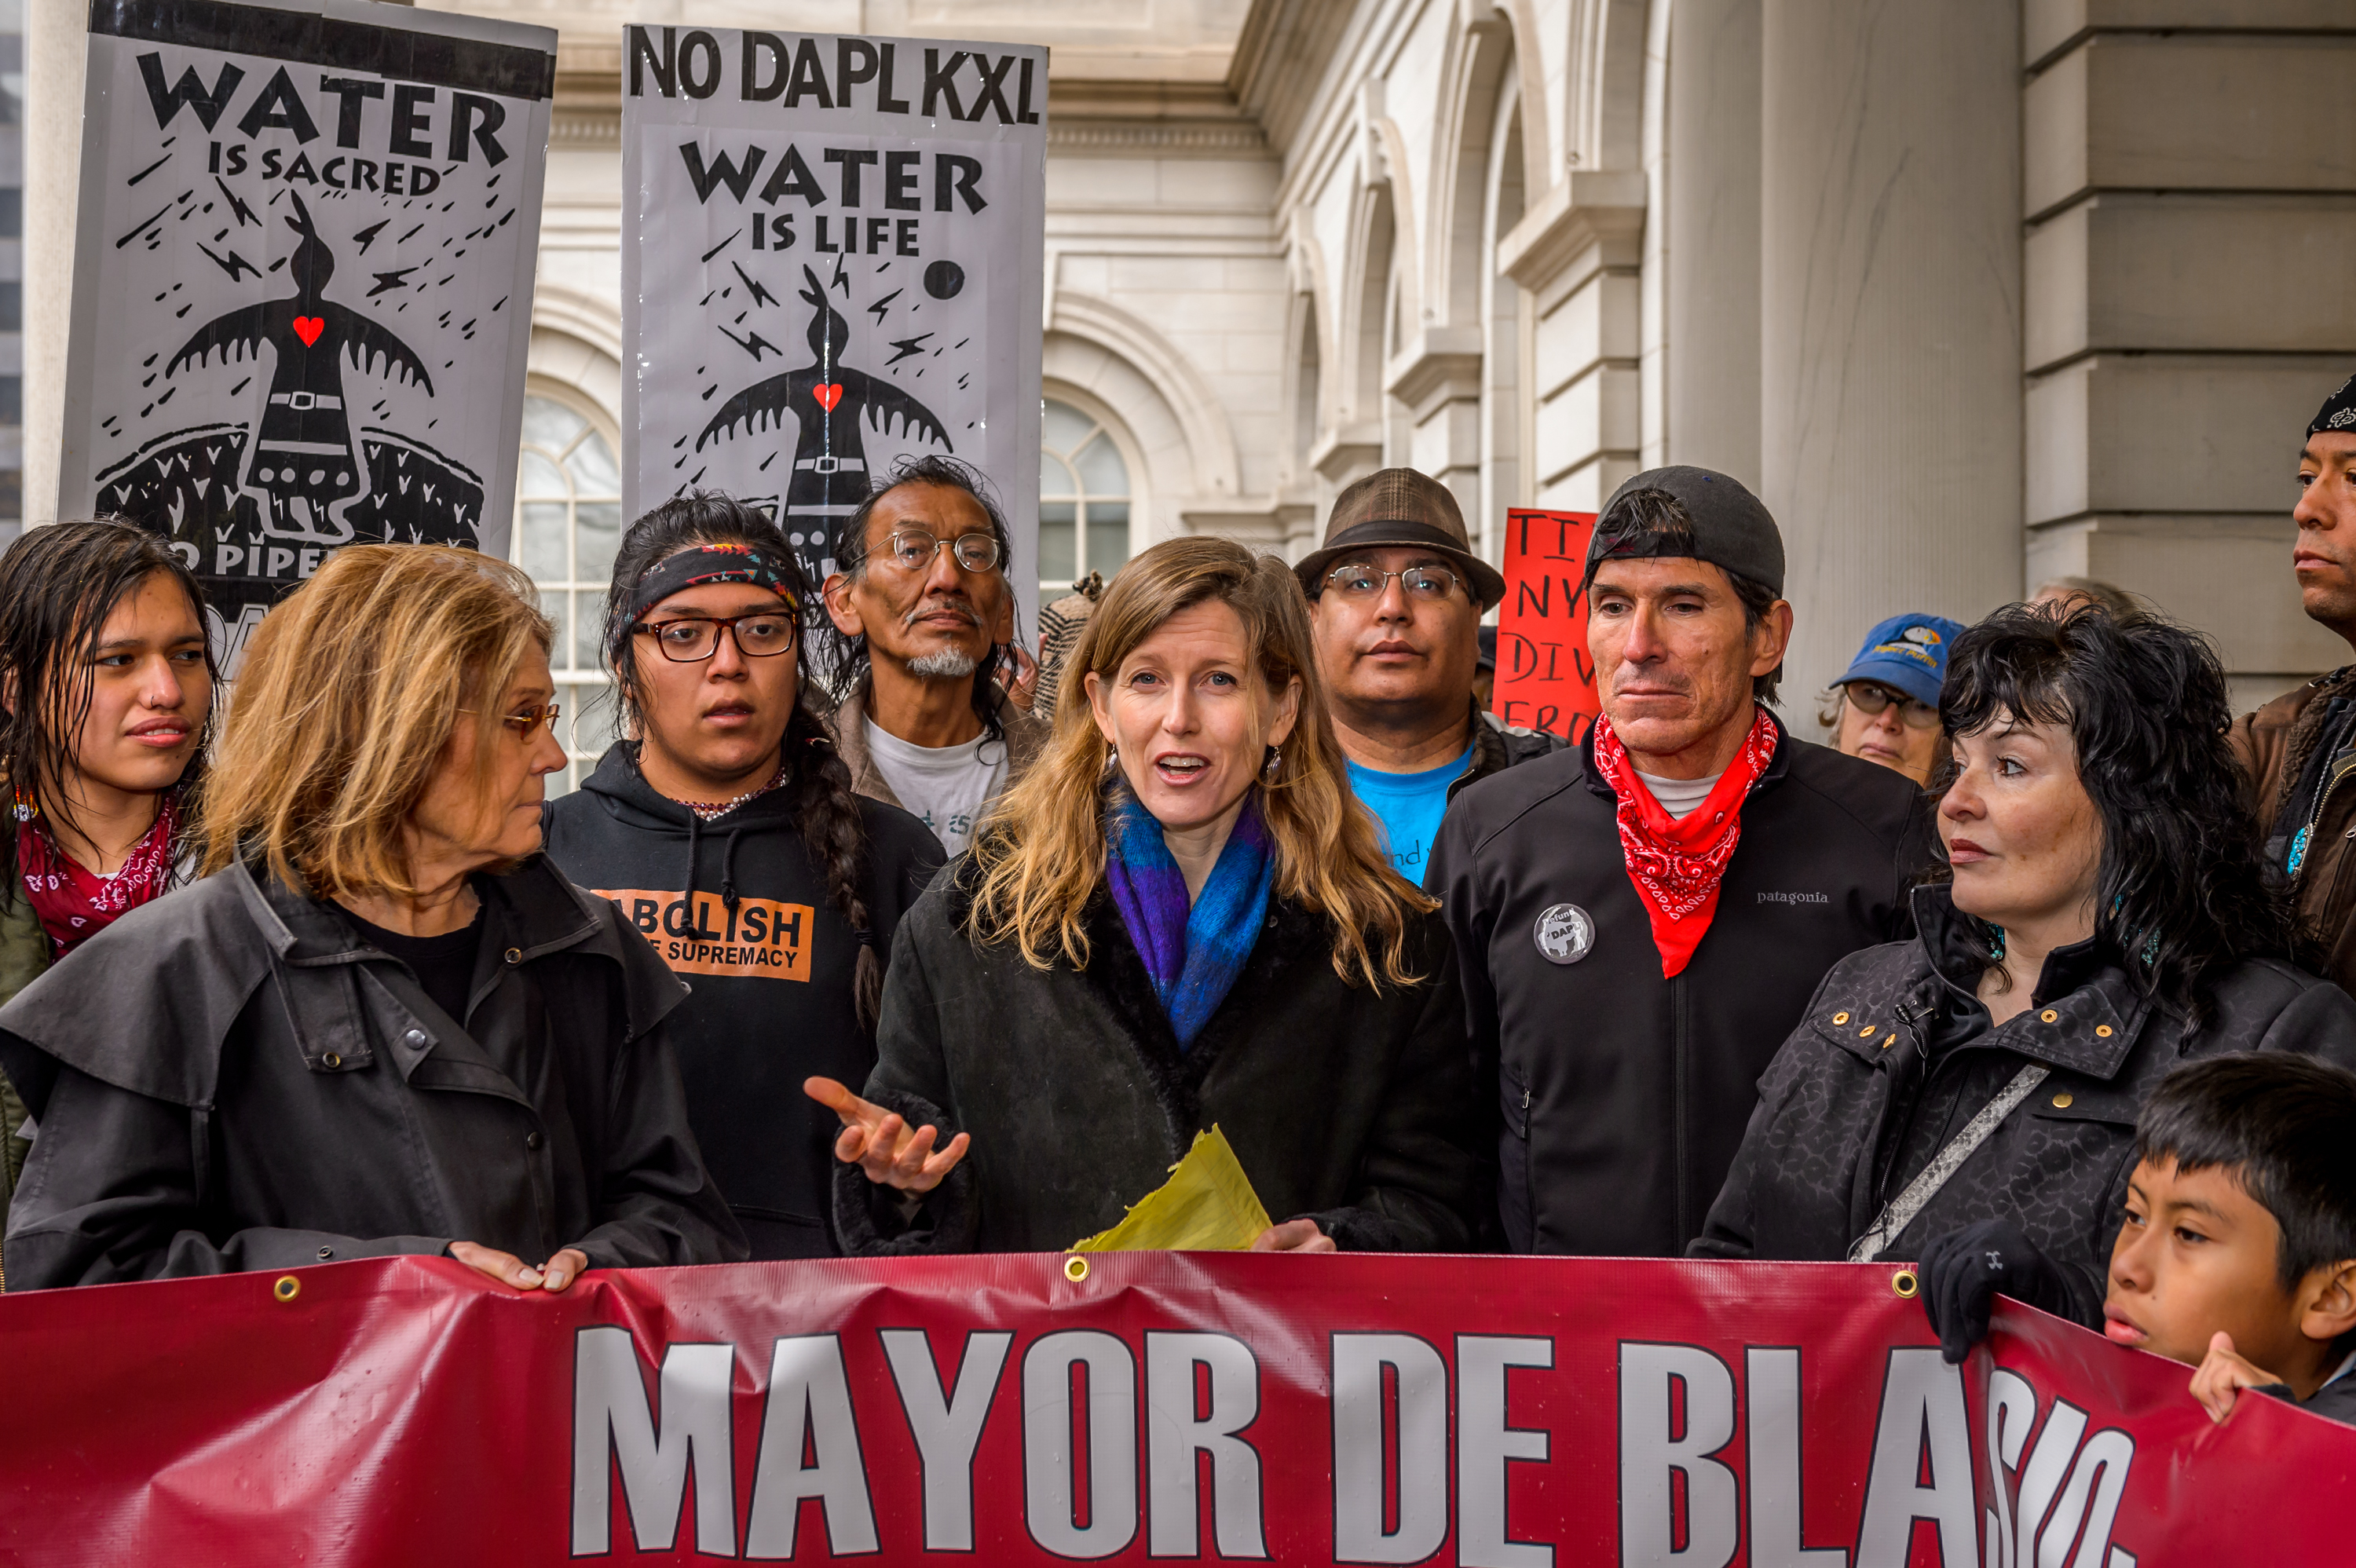 Center for Earth Ethics Director Karenna Gore protests with the #NoDAPL encampment at Wells Fargo, calling on Mayor Bill de Blasio, as well as the New York City Comptroller Stringer to end the city's business with and investments into Wall Street banks attacking Native Nations. The protest march began at Wells Fargo at 463 Broadway and reached City Hall for a rally at the City Hall steps with women's rights leader and activist icon Gloria Steinem.